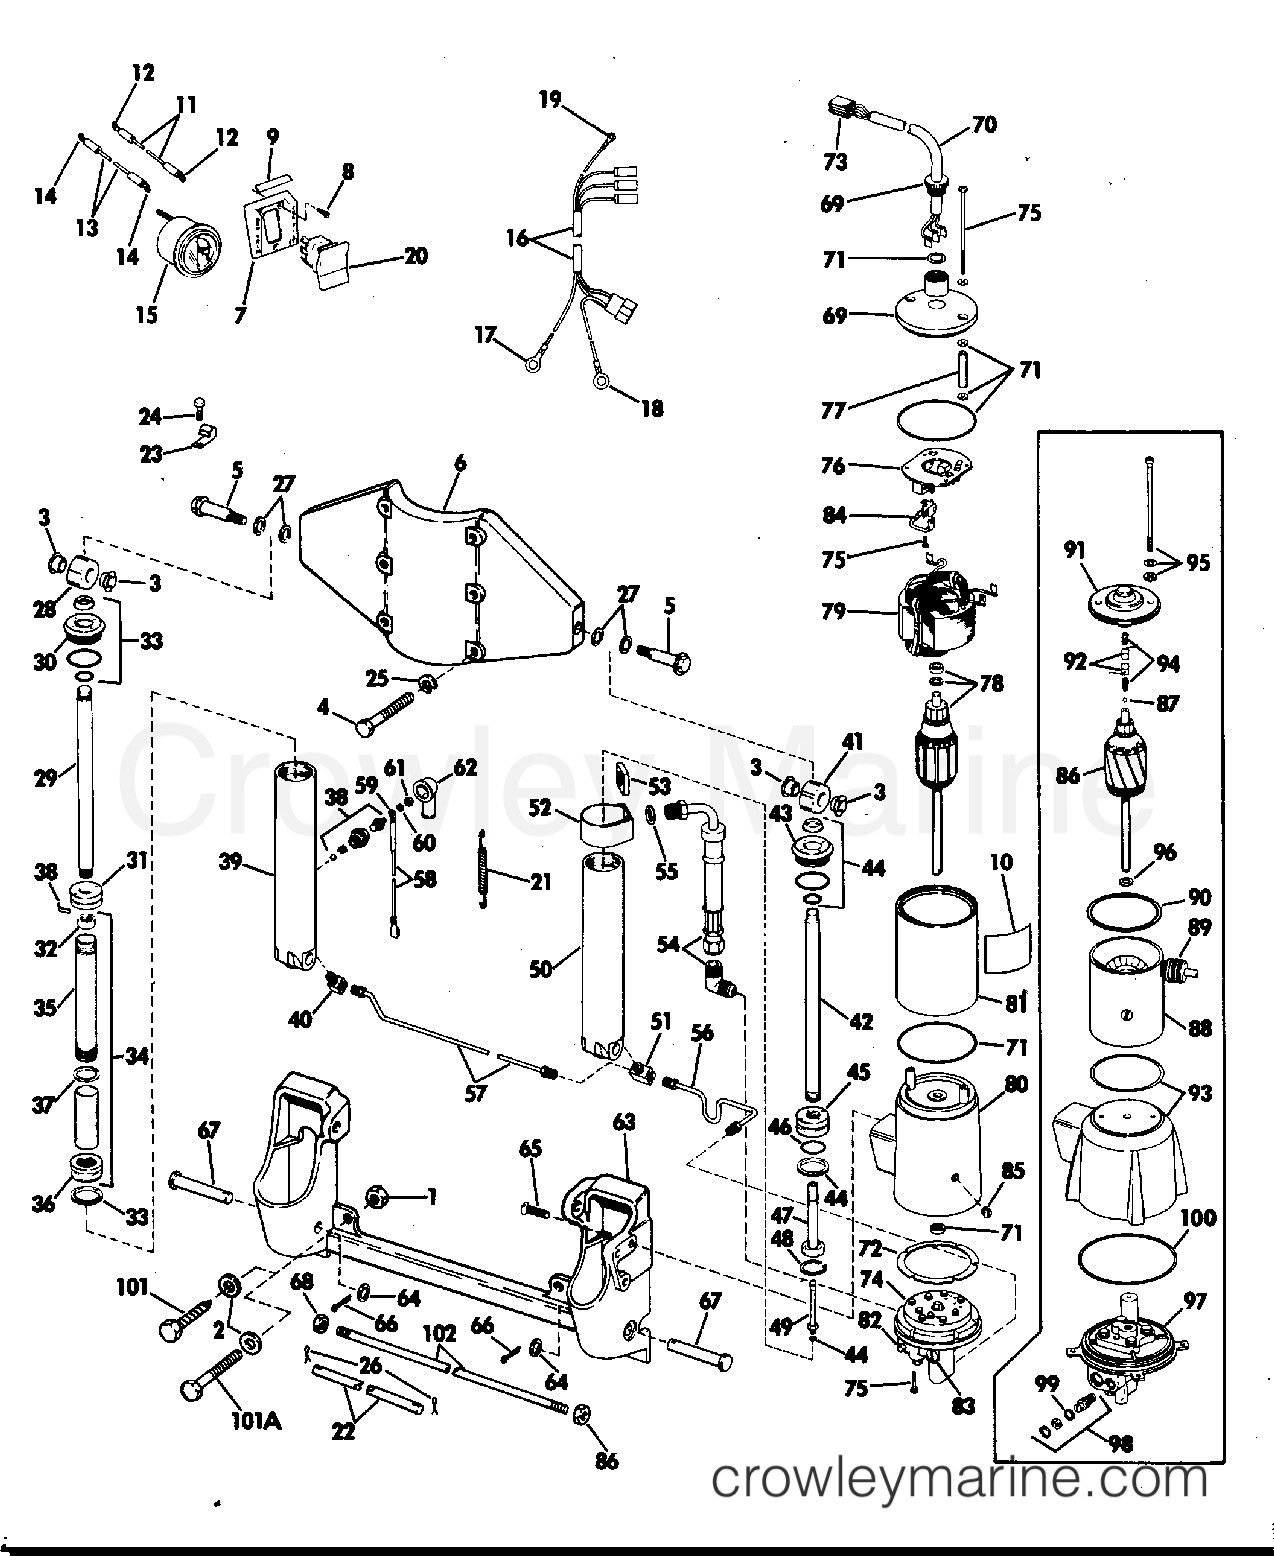 Power Tilt And Trim 50 Hp 1974 Rigging Parts Accessories Diagram Power House Wiring